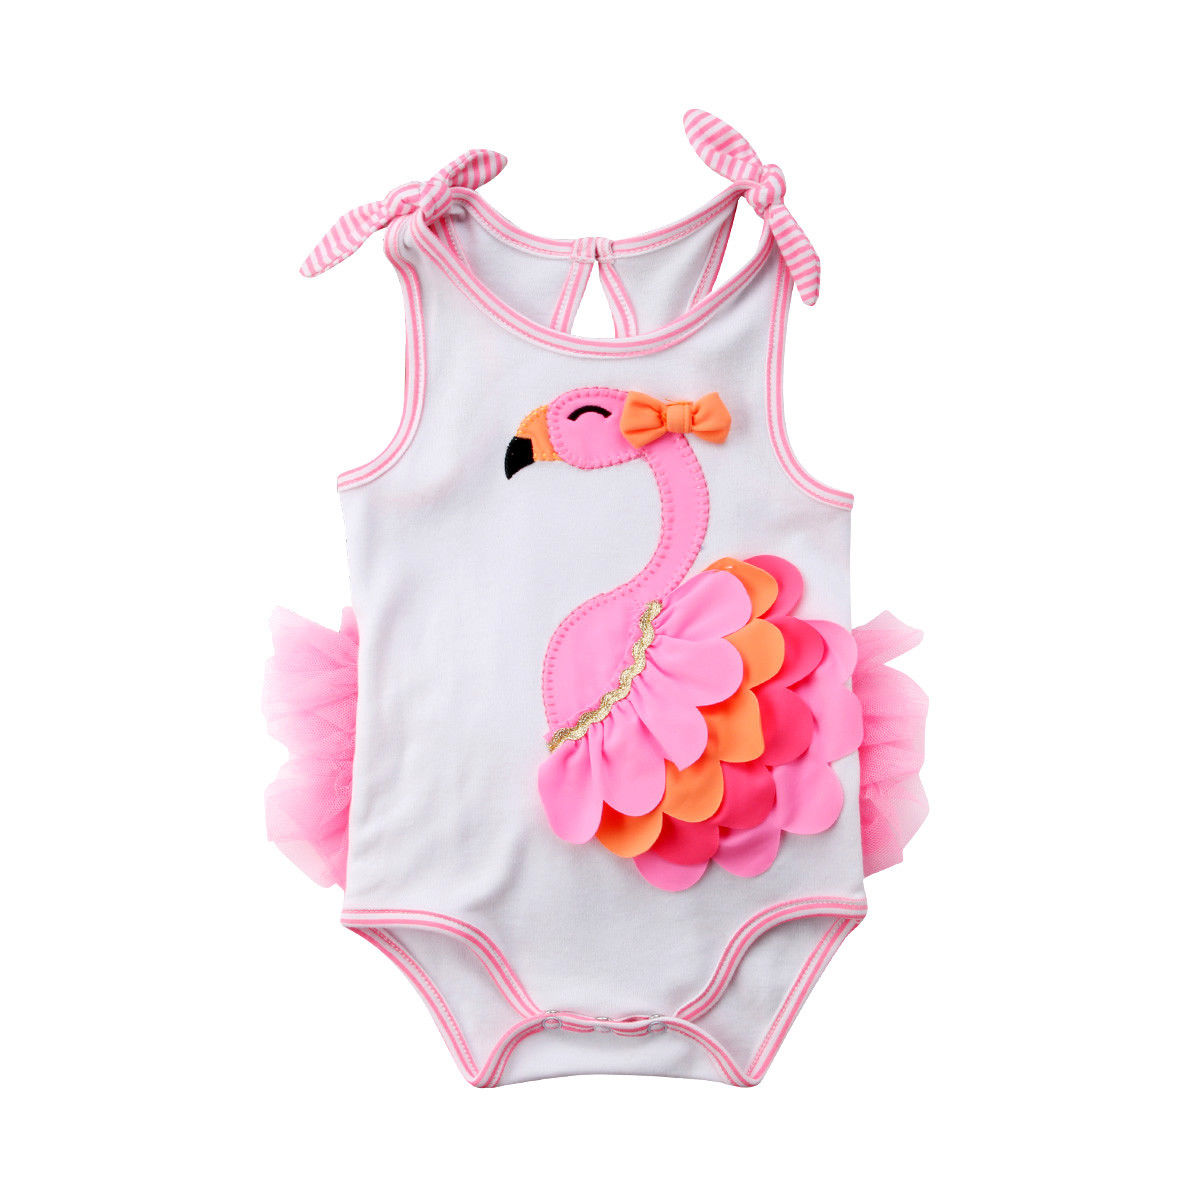 все цены на 0-18M Cute Newborn Kids Baby Girl Clothes Flamingo Flower Lace Romper Sleeveless Lace up Jumpsuit Outfits pink lovely